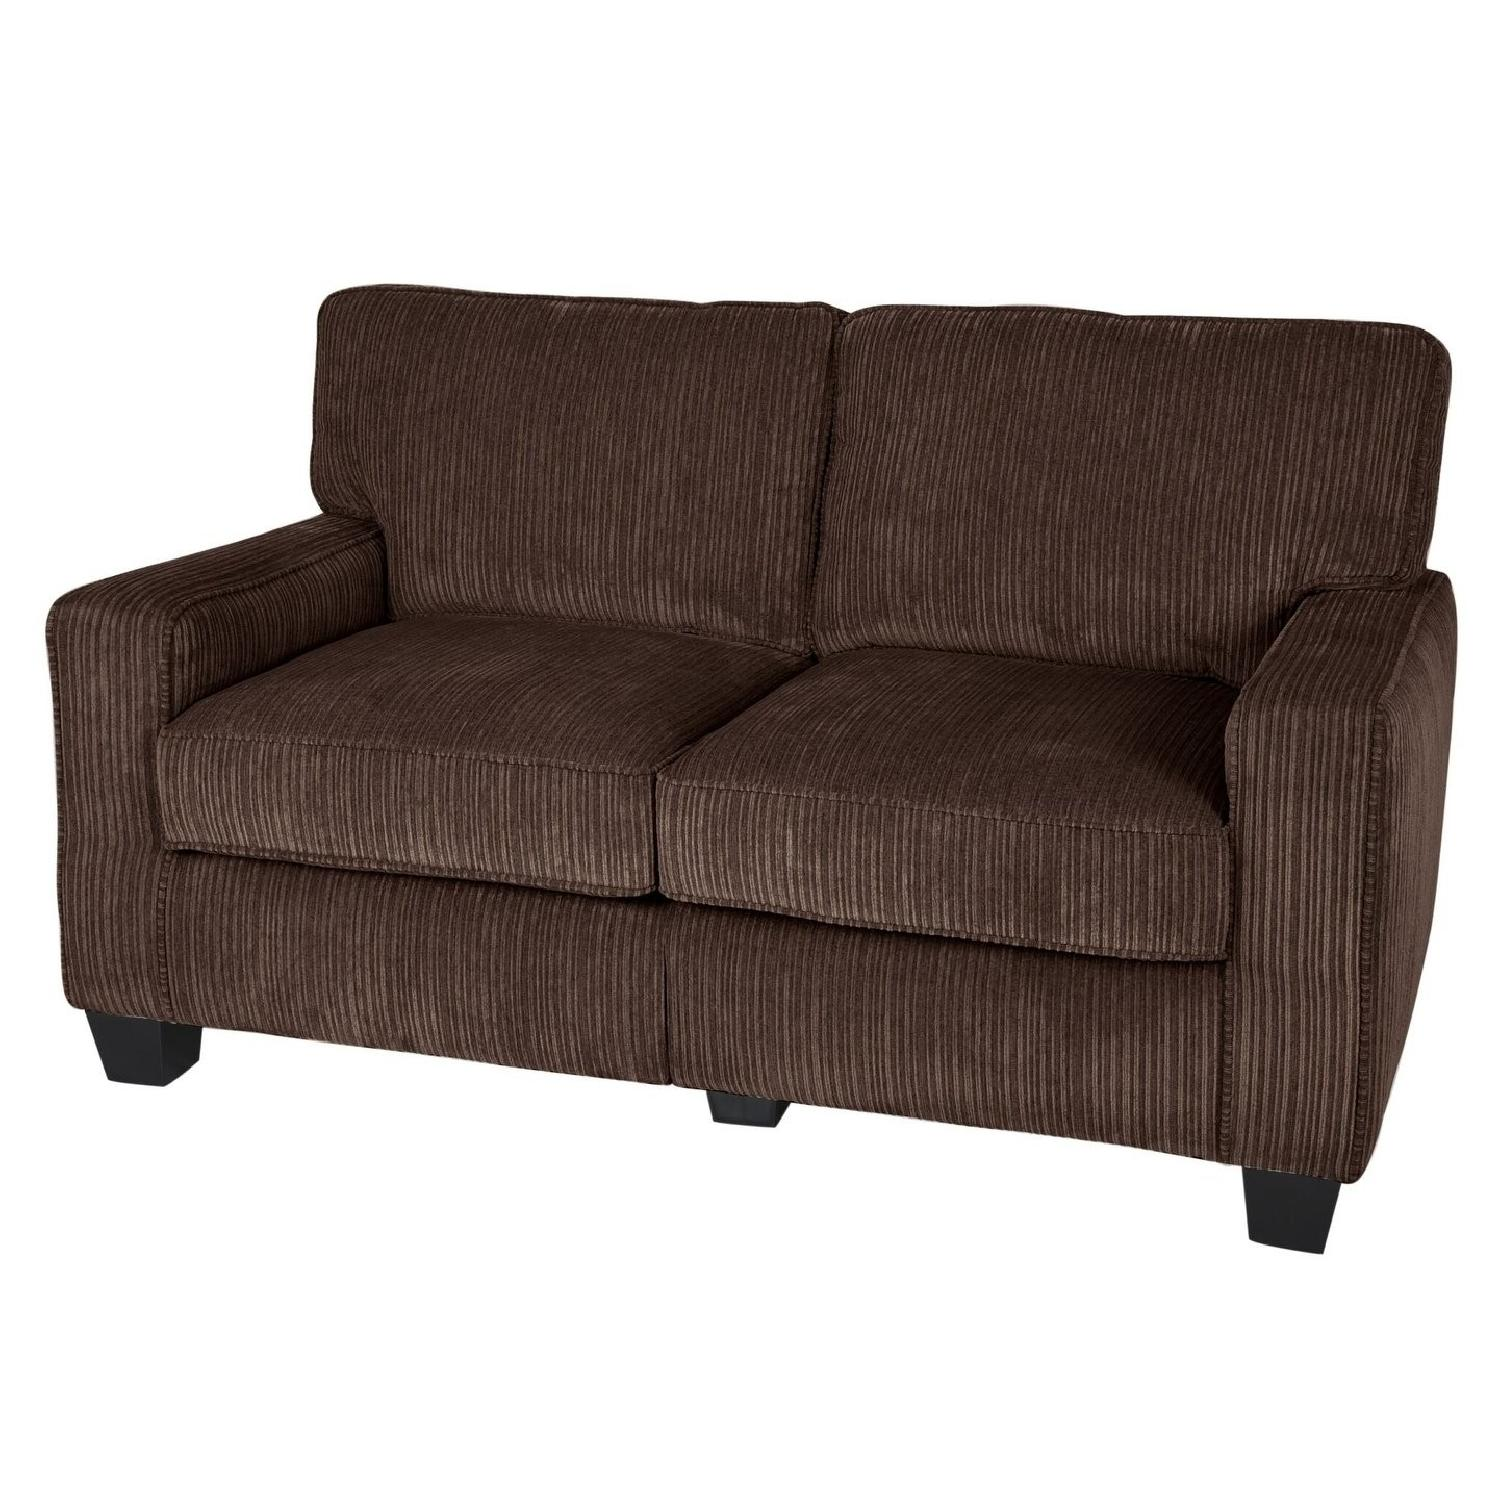 Serta RTA Palisades Loveseat in Dark Brown